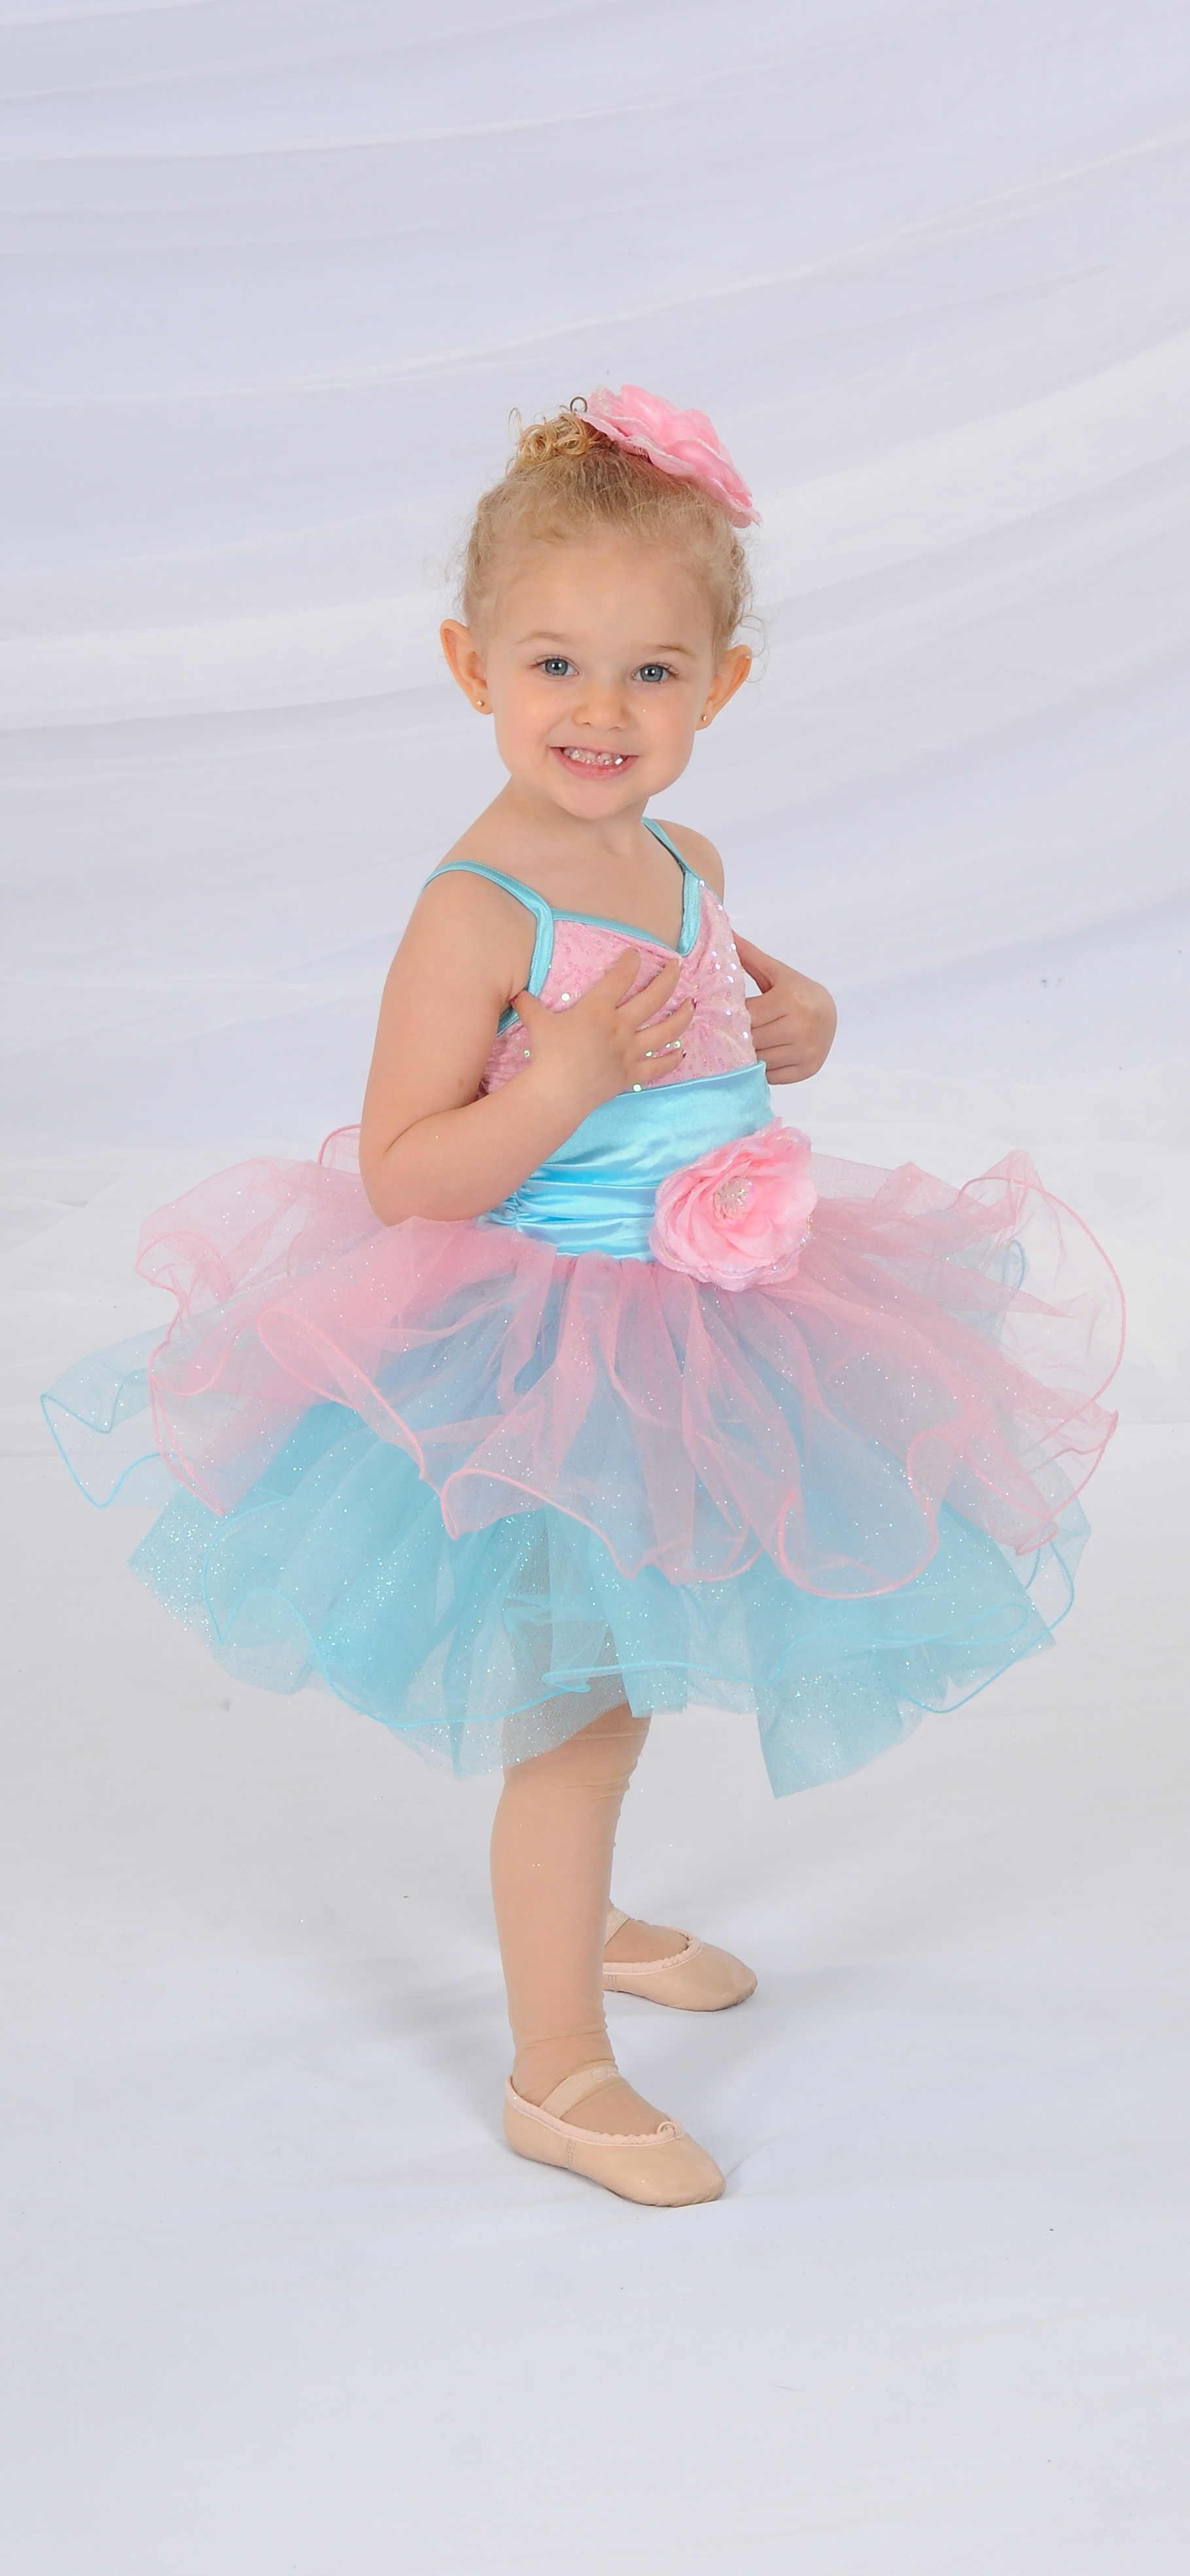 7498c0082902 The Straub Dance Center Young Dancer Program offers classes for children  ages two to six. Parents and family members will be able to watch every  adorable ...